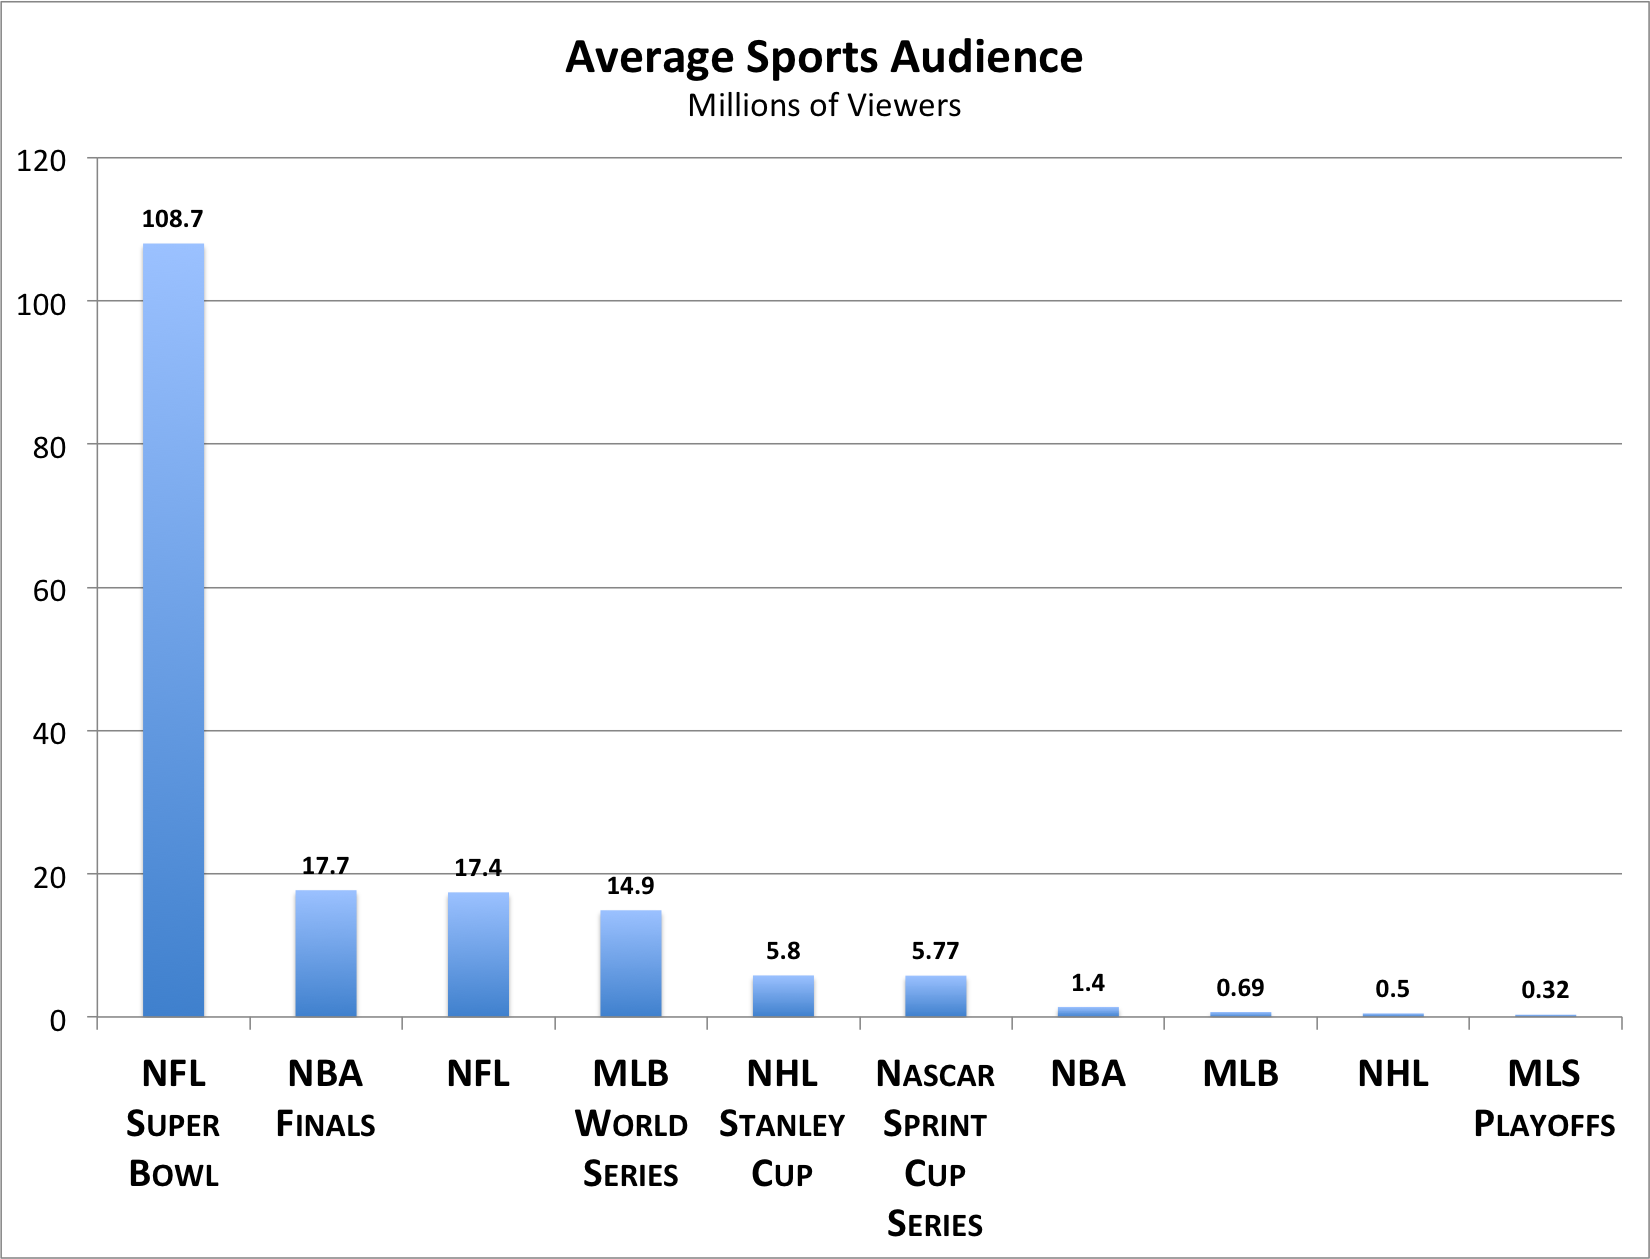 nfl is the 1 most popular sport mlb is 2 and nba is 7